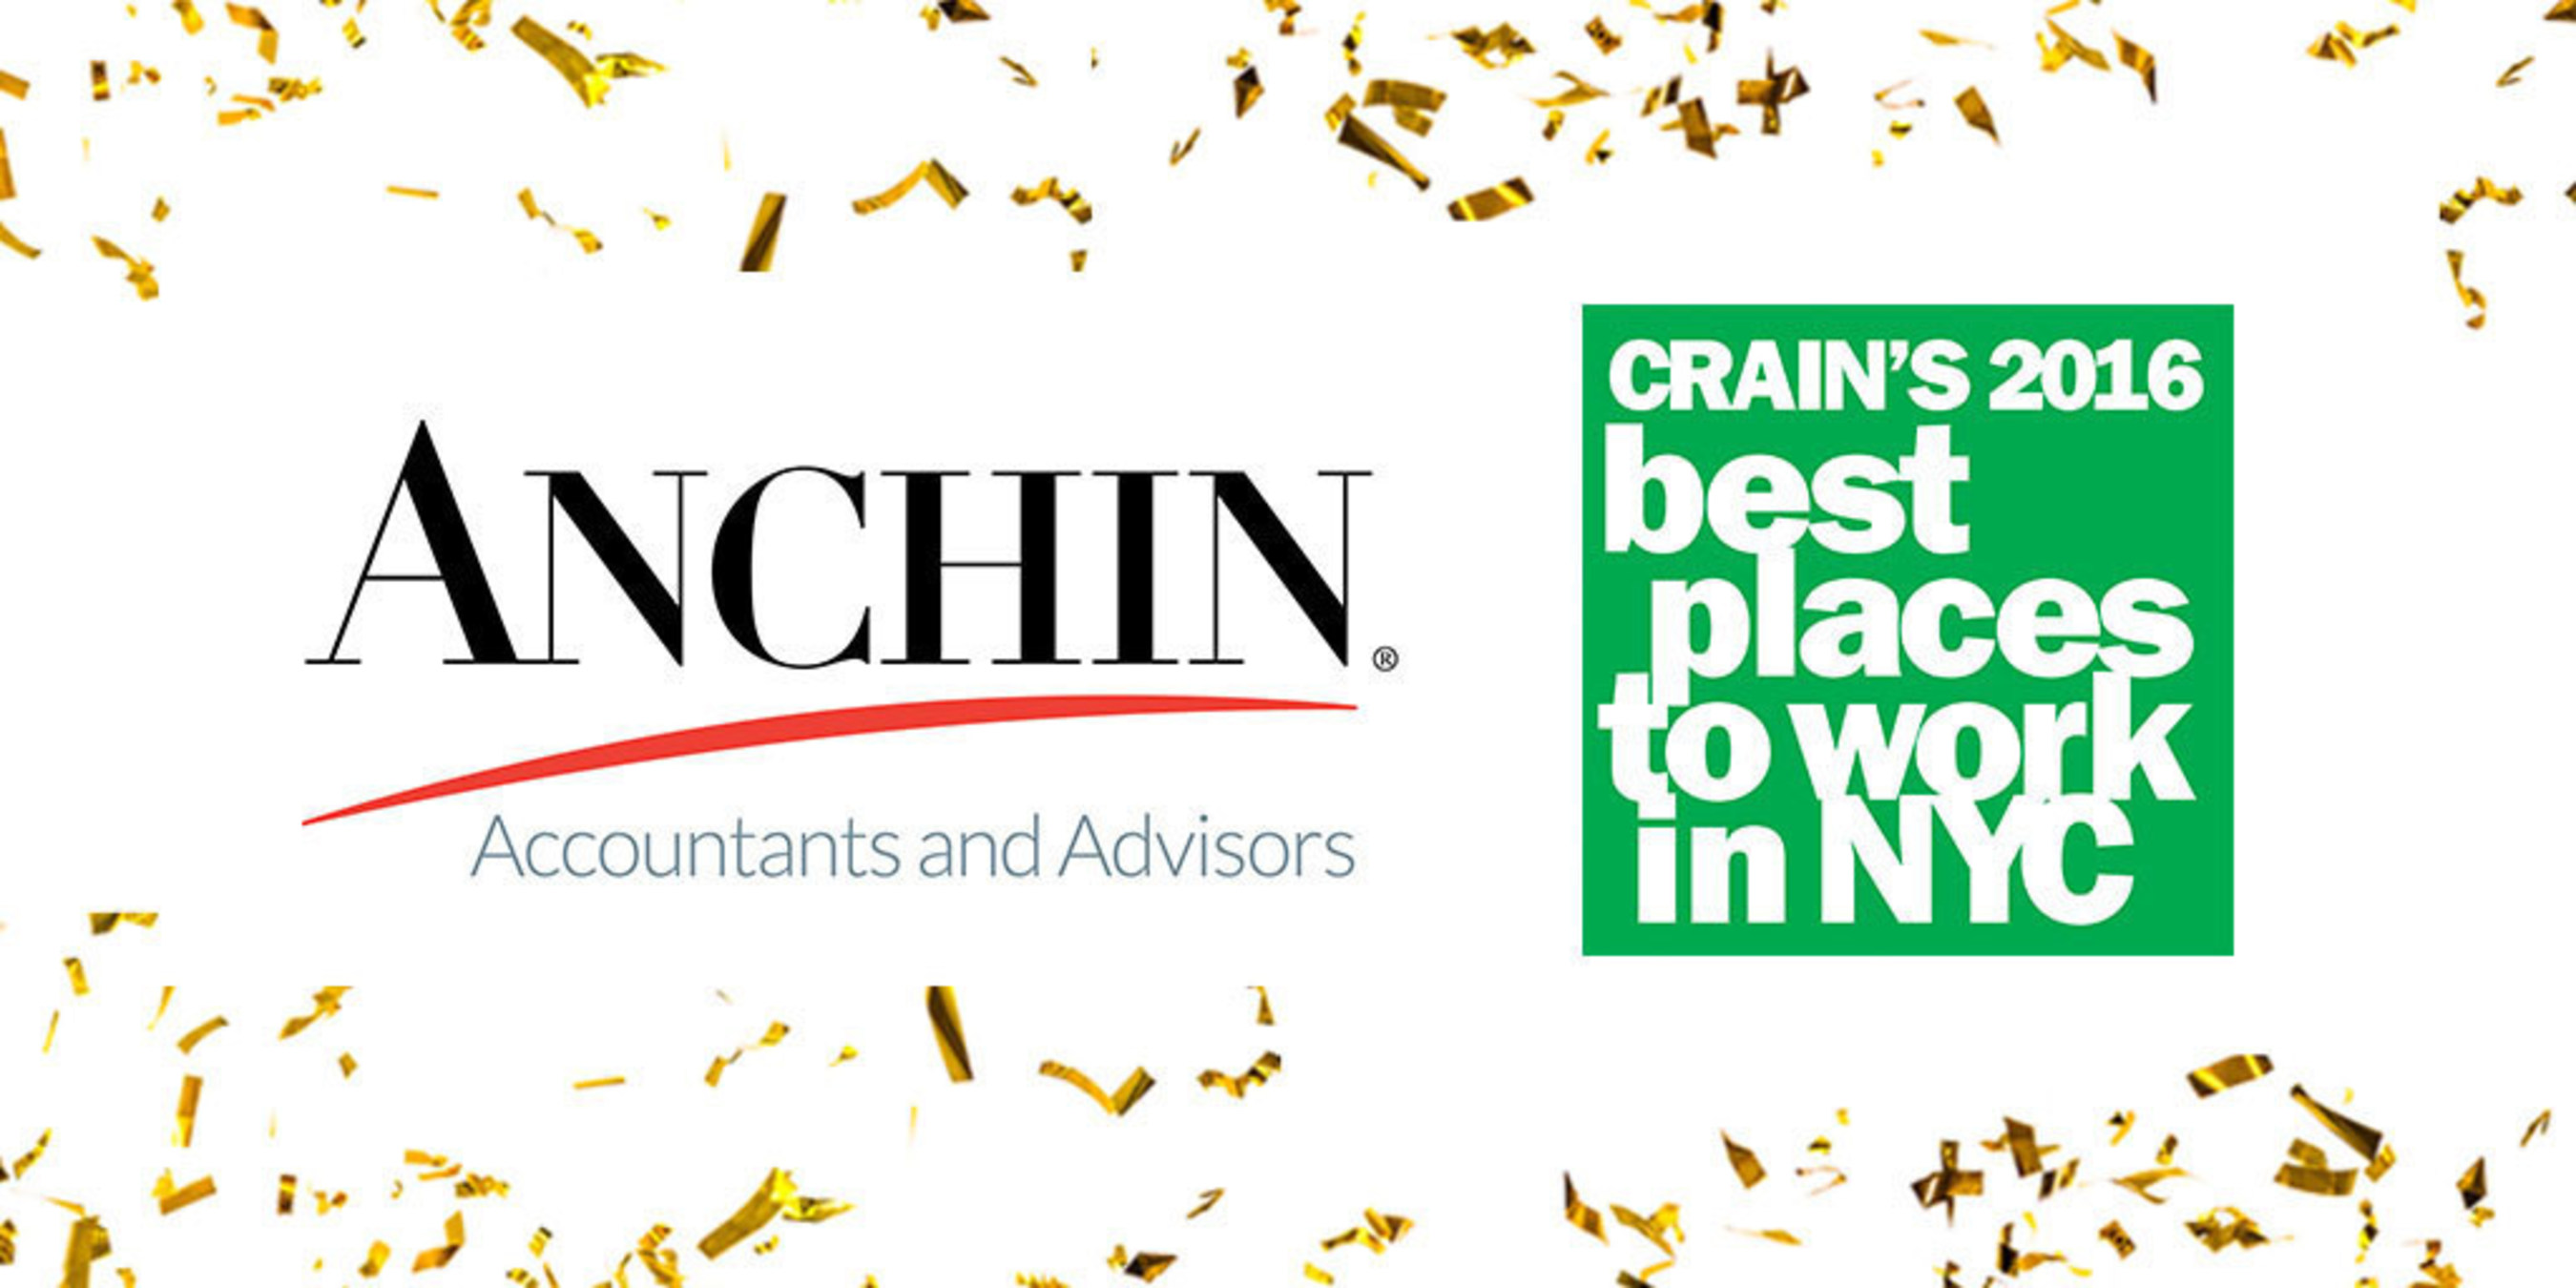 Anchin Block & Anchin LLP Best Places to Work in NYC 2016